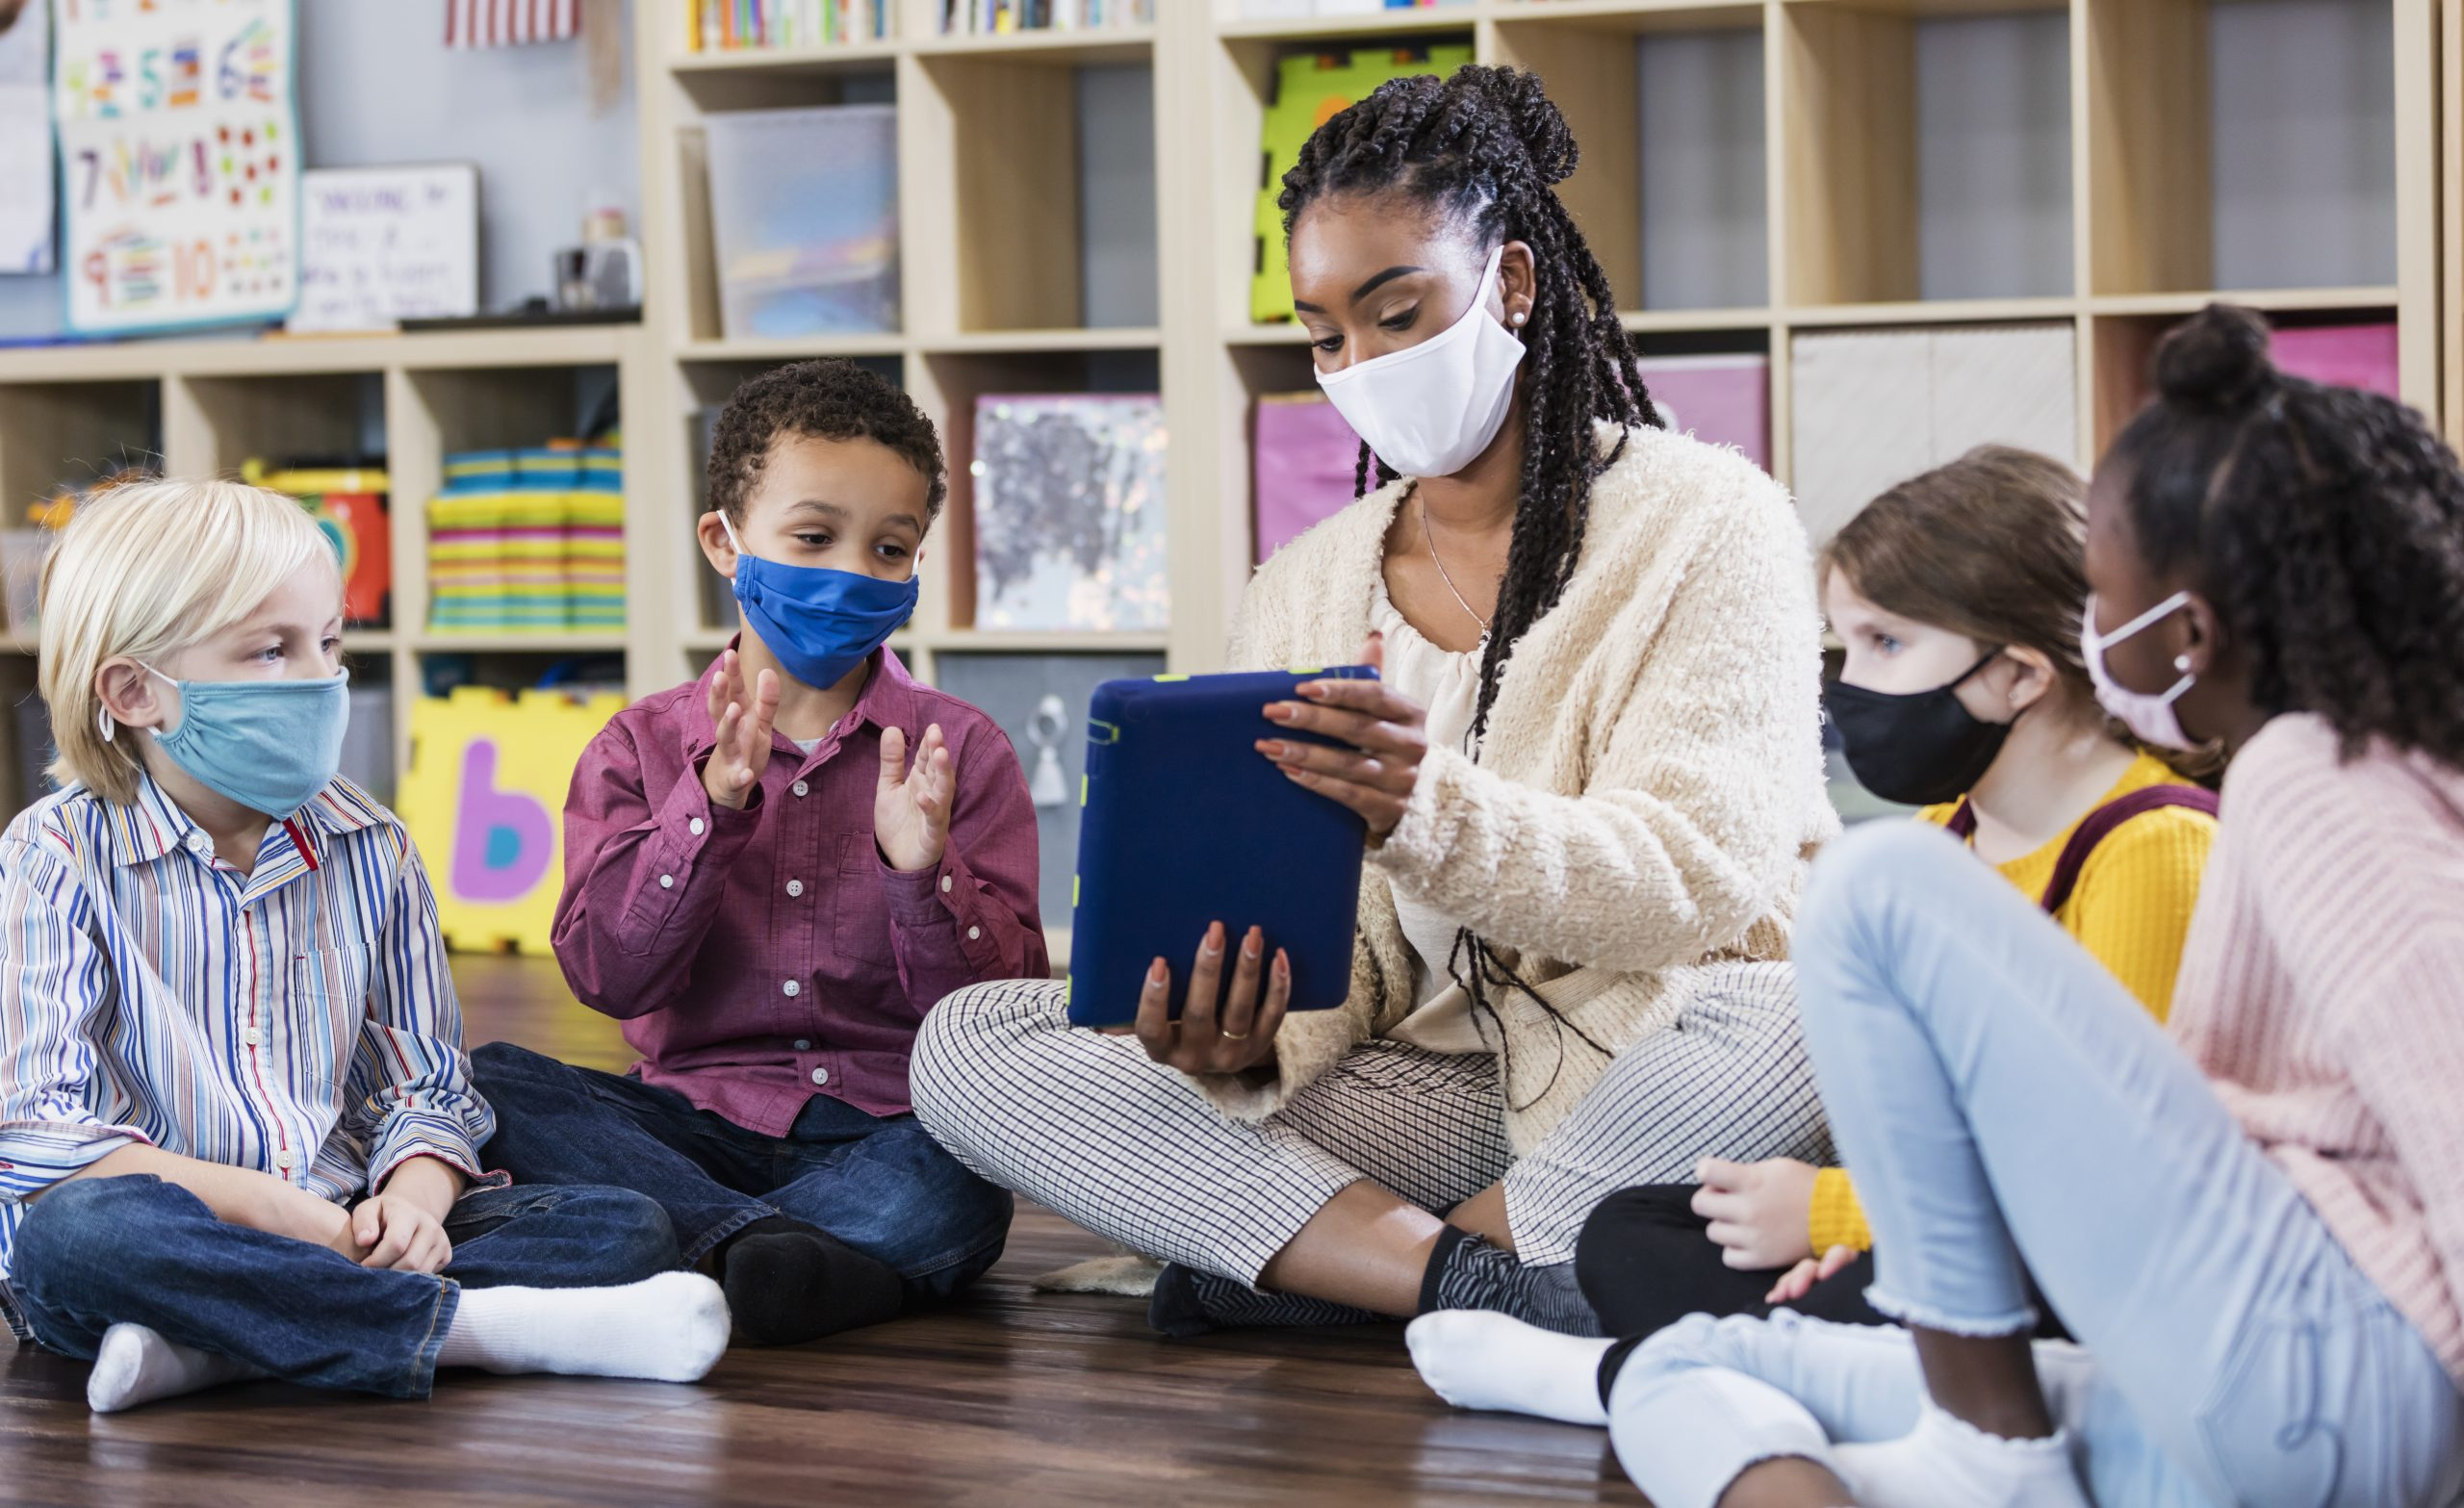 Black woman teacher sits cross-legged with diverse children in school classroom. All of them are wearing masks. The teacher shows one student something on a tablet.